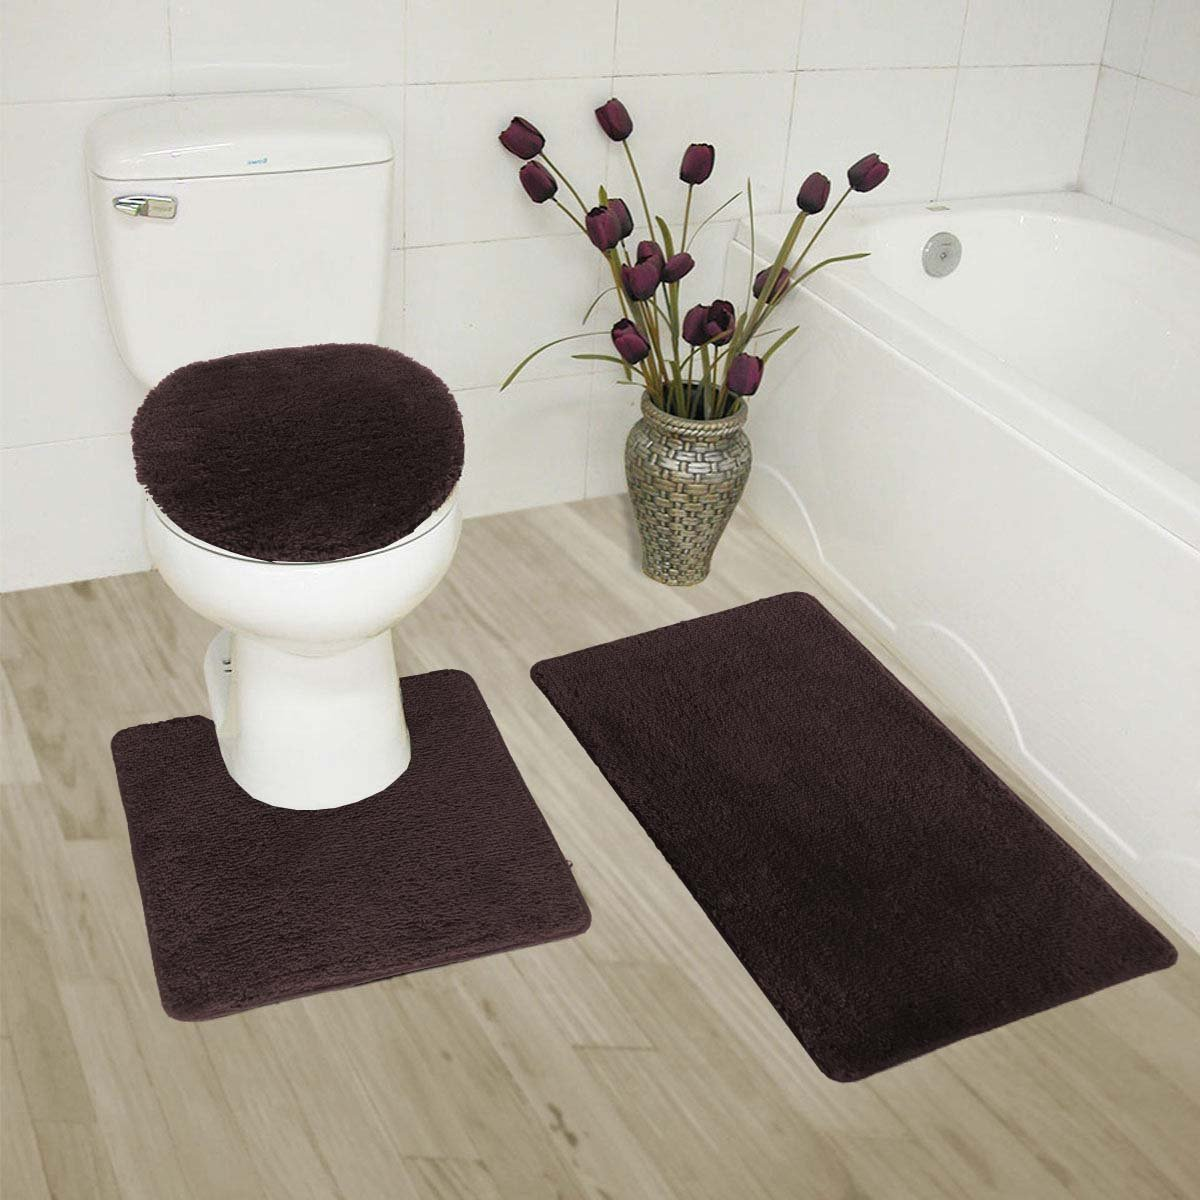 The Best Bathroom Rugs And Non-Slip Mats: Reviews & Buying Guide 18